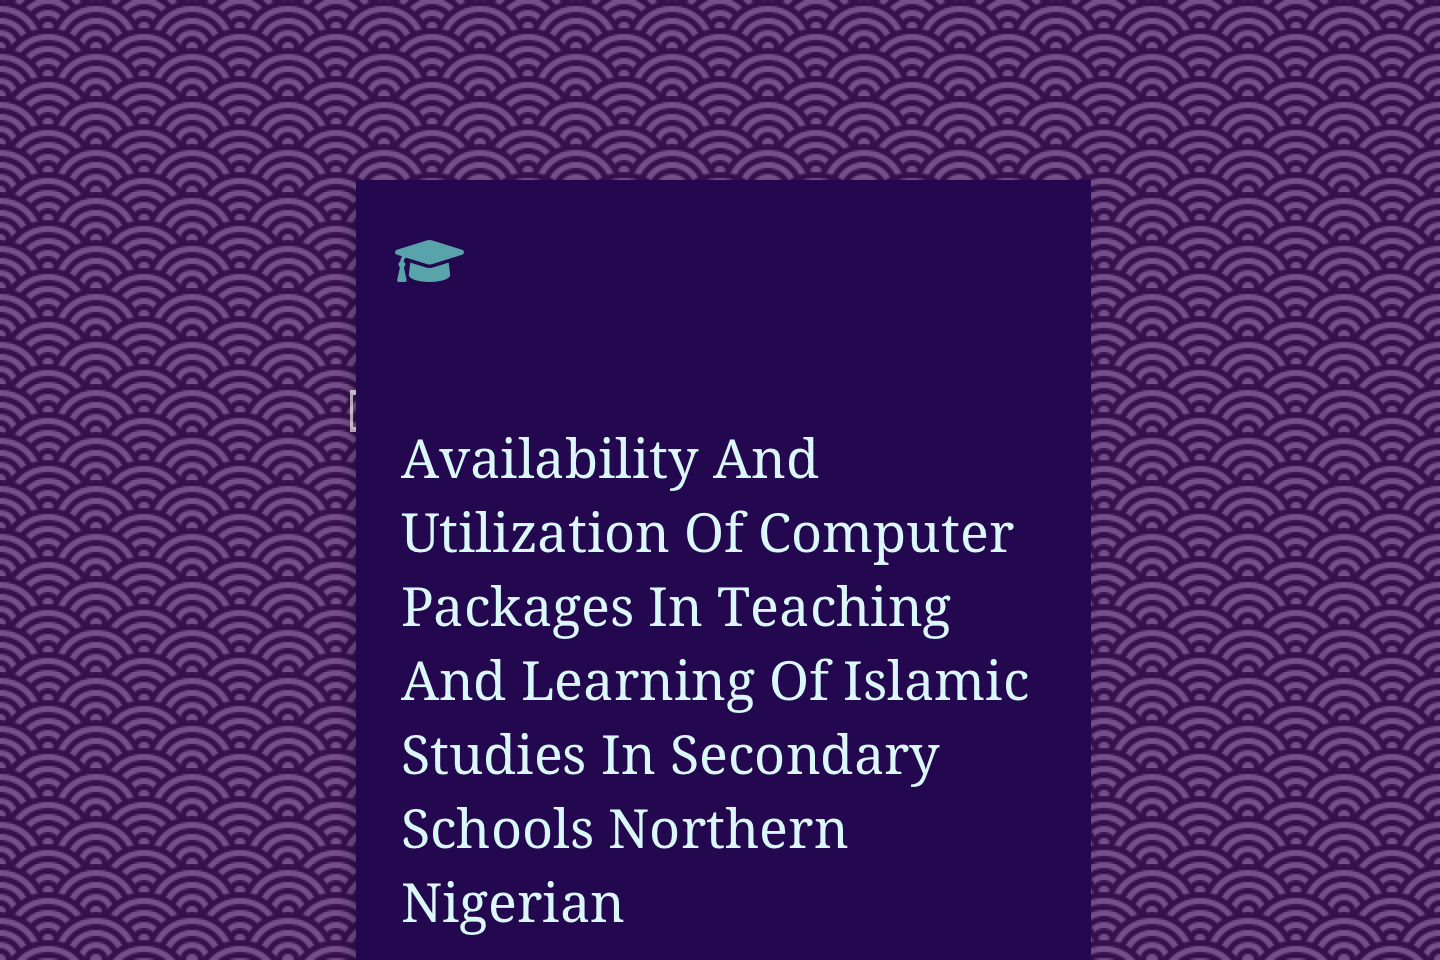 Availability And Utilization Of Computer Packages In Teaching And Learning Of Islamic Studies In Secondary Schools Northern Nigerian